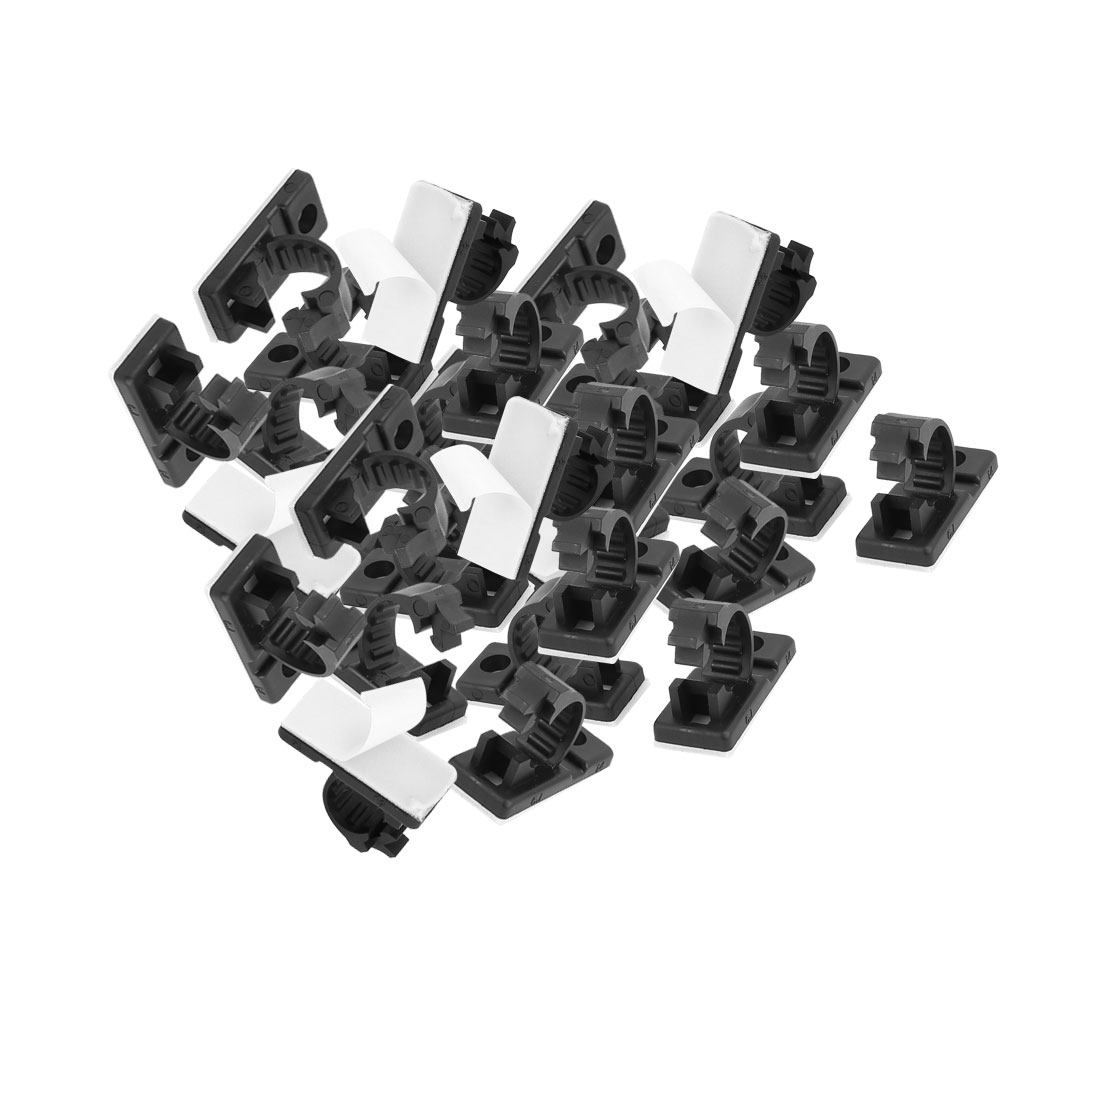 30Pcs 13mmx29mm White Adhesive Backed Nylon Wire Adjustable Cable Clips Clamps